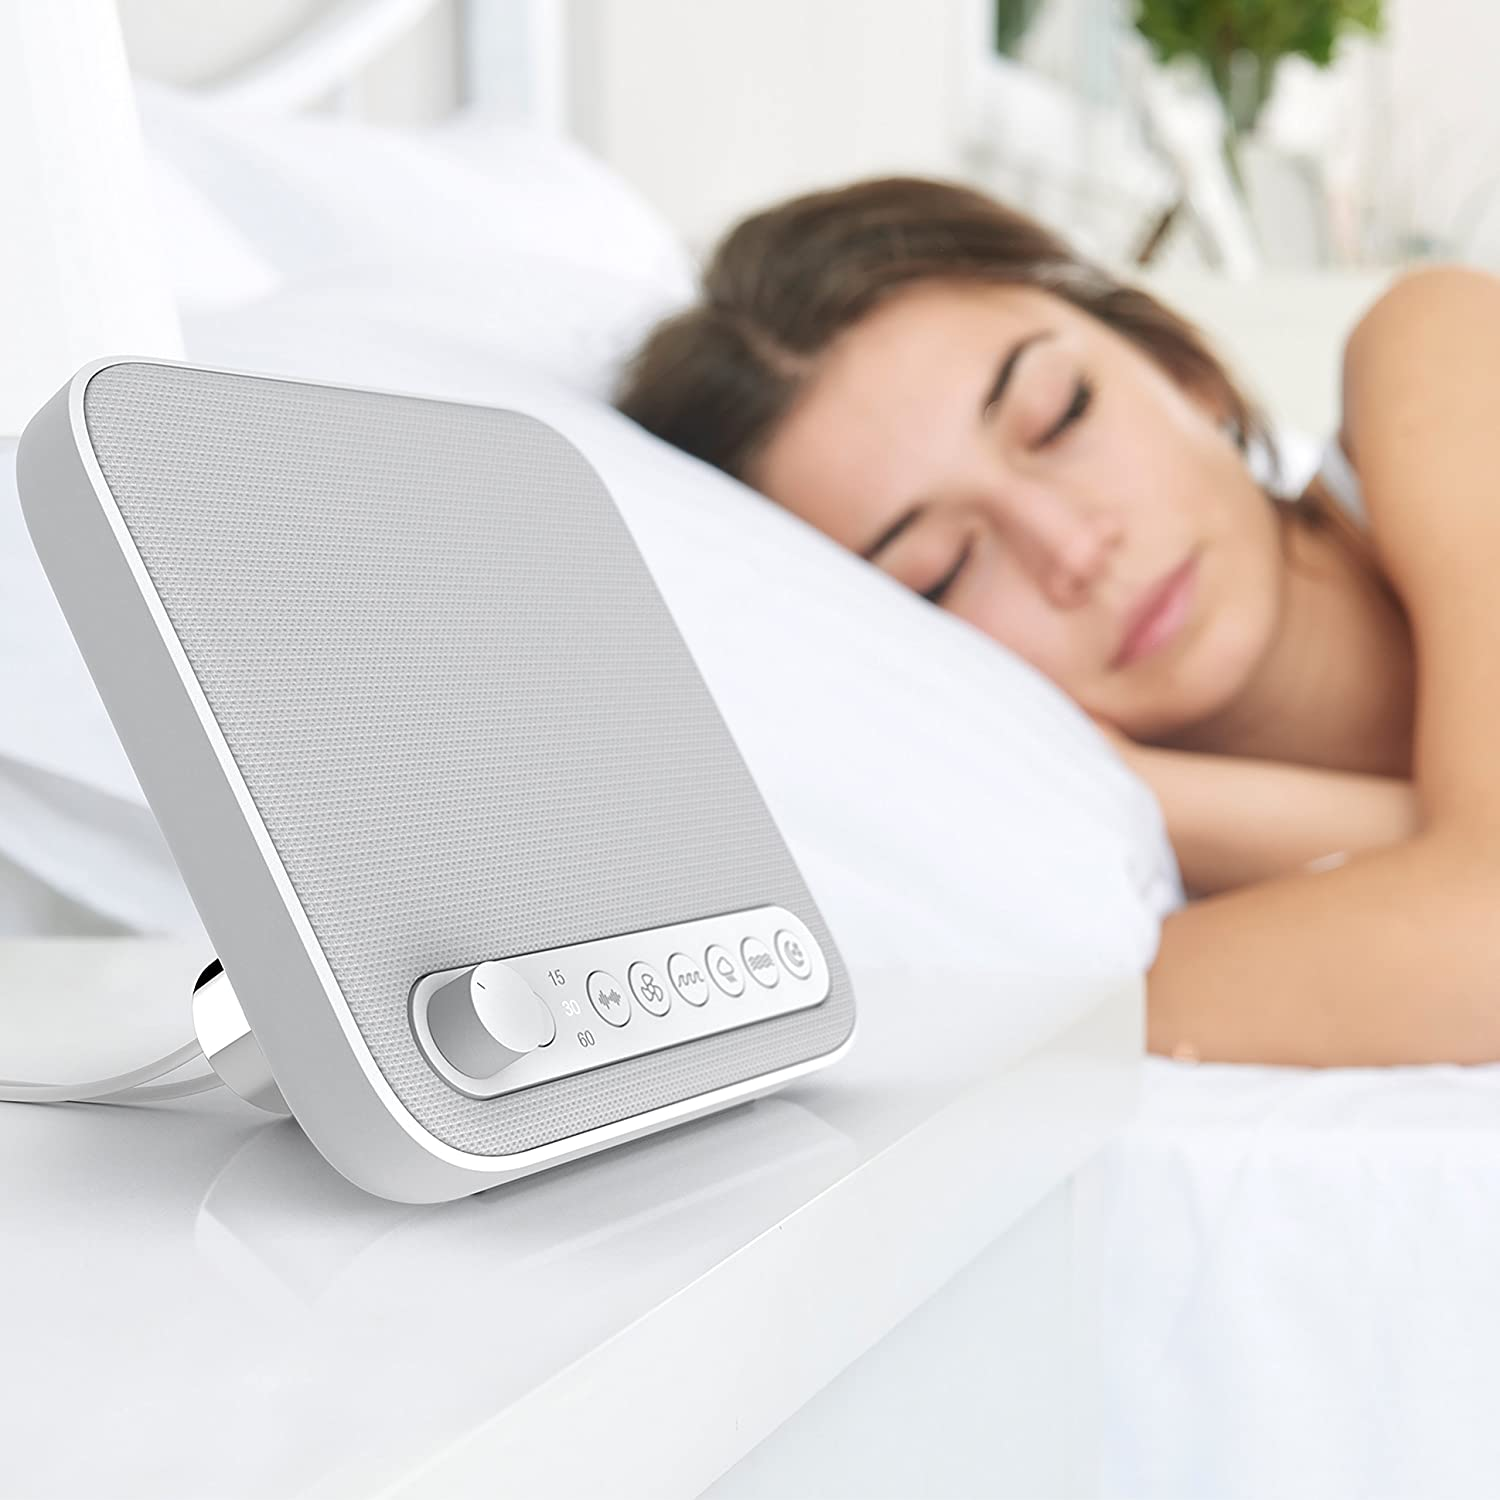 Top 10 Best White Noise Machine For Tinnitus Reviews in 2021 4